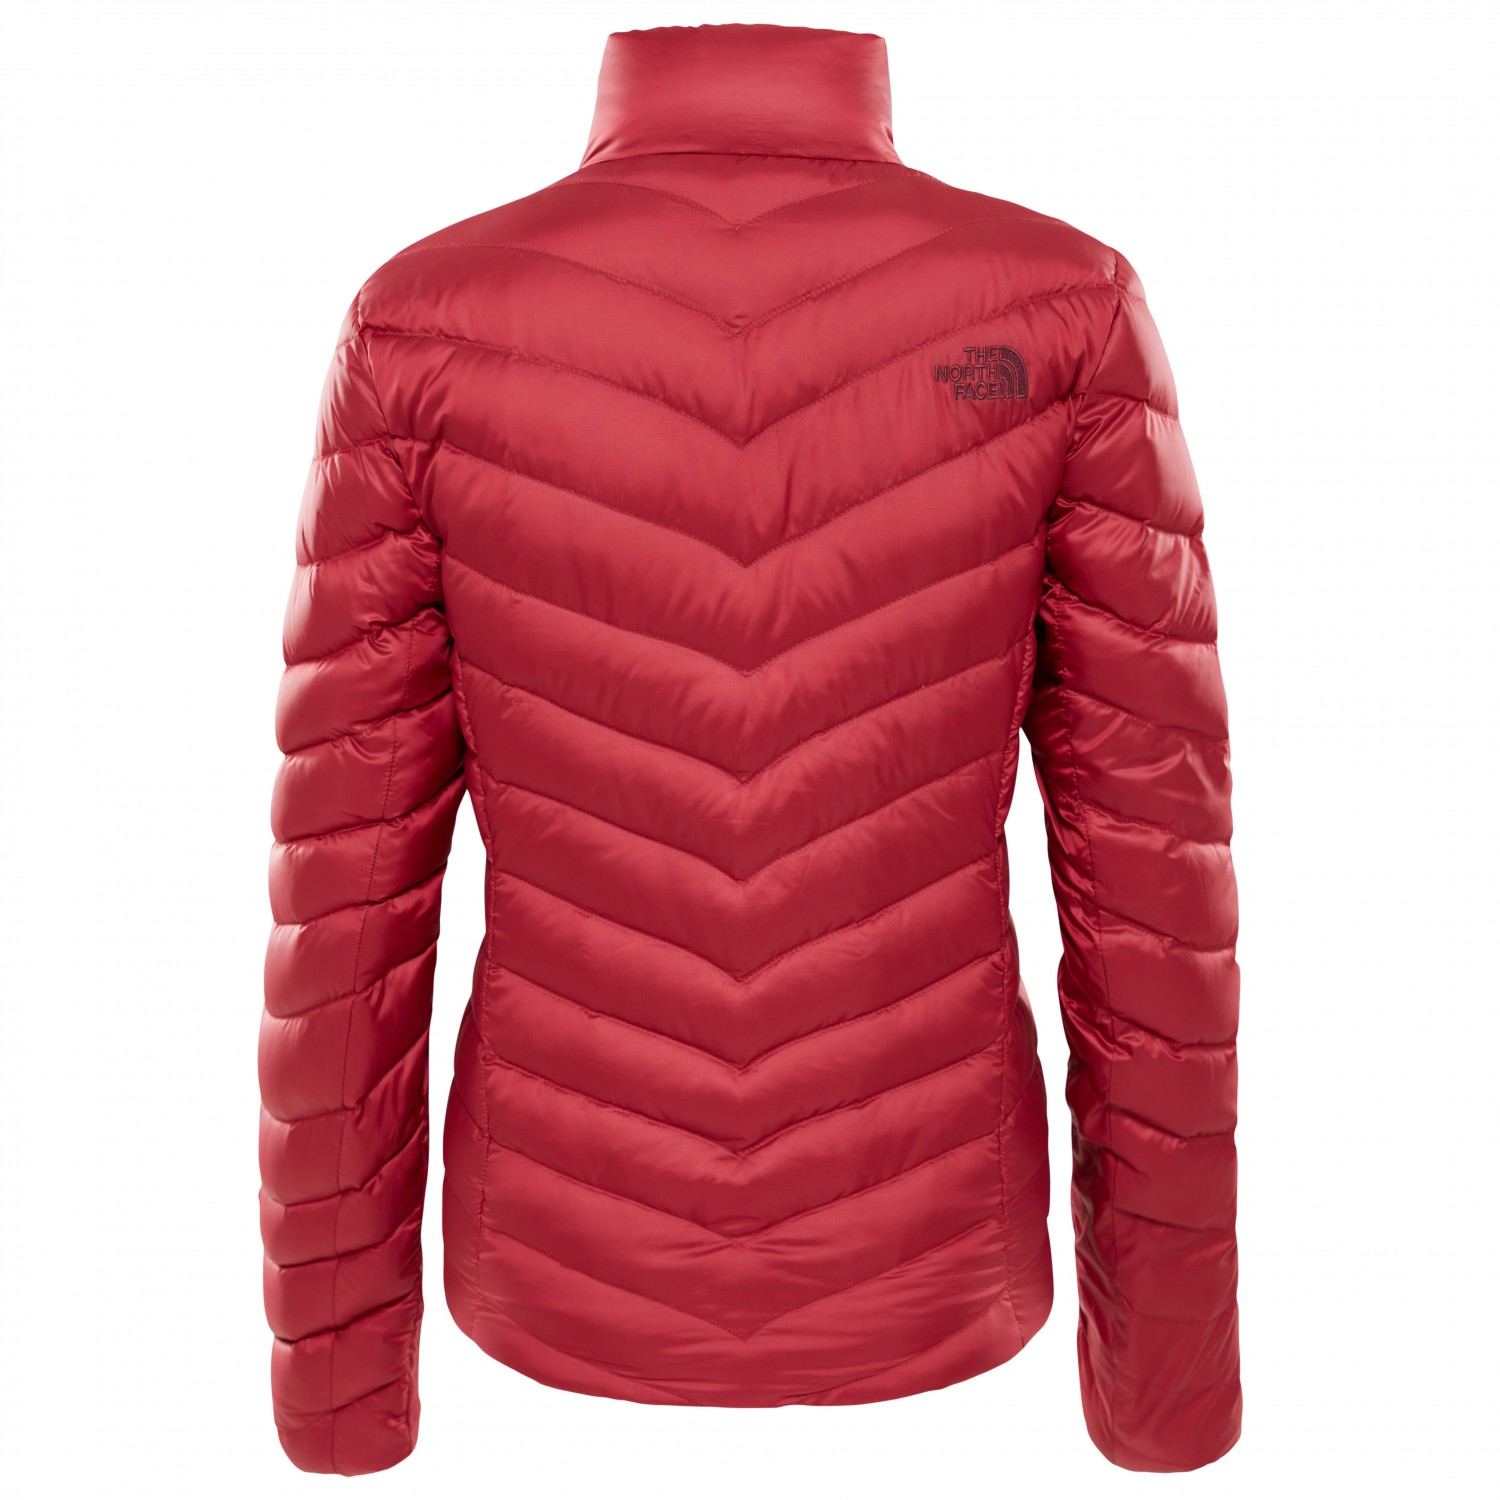 12f45e8695 ... The North Face - Women s Trevail Jacket 700 - Down jacket ...